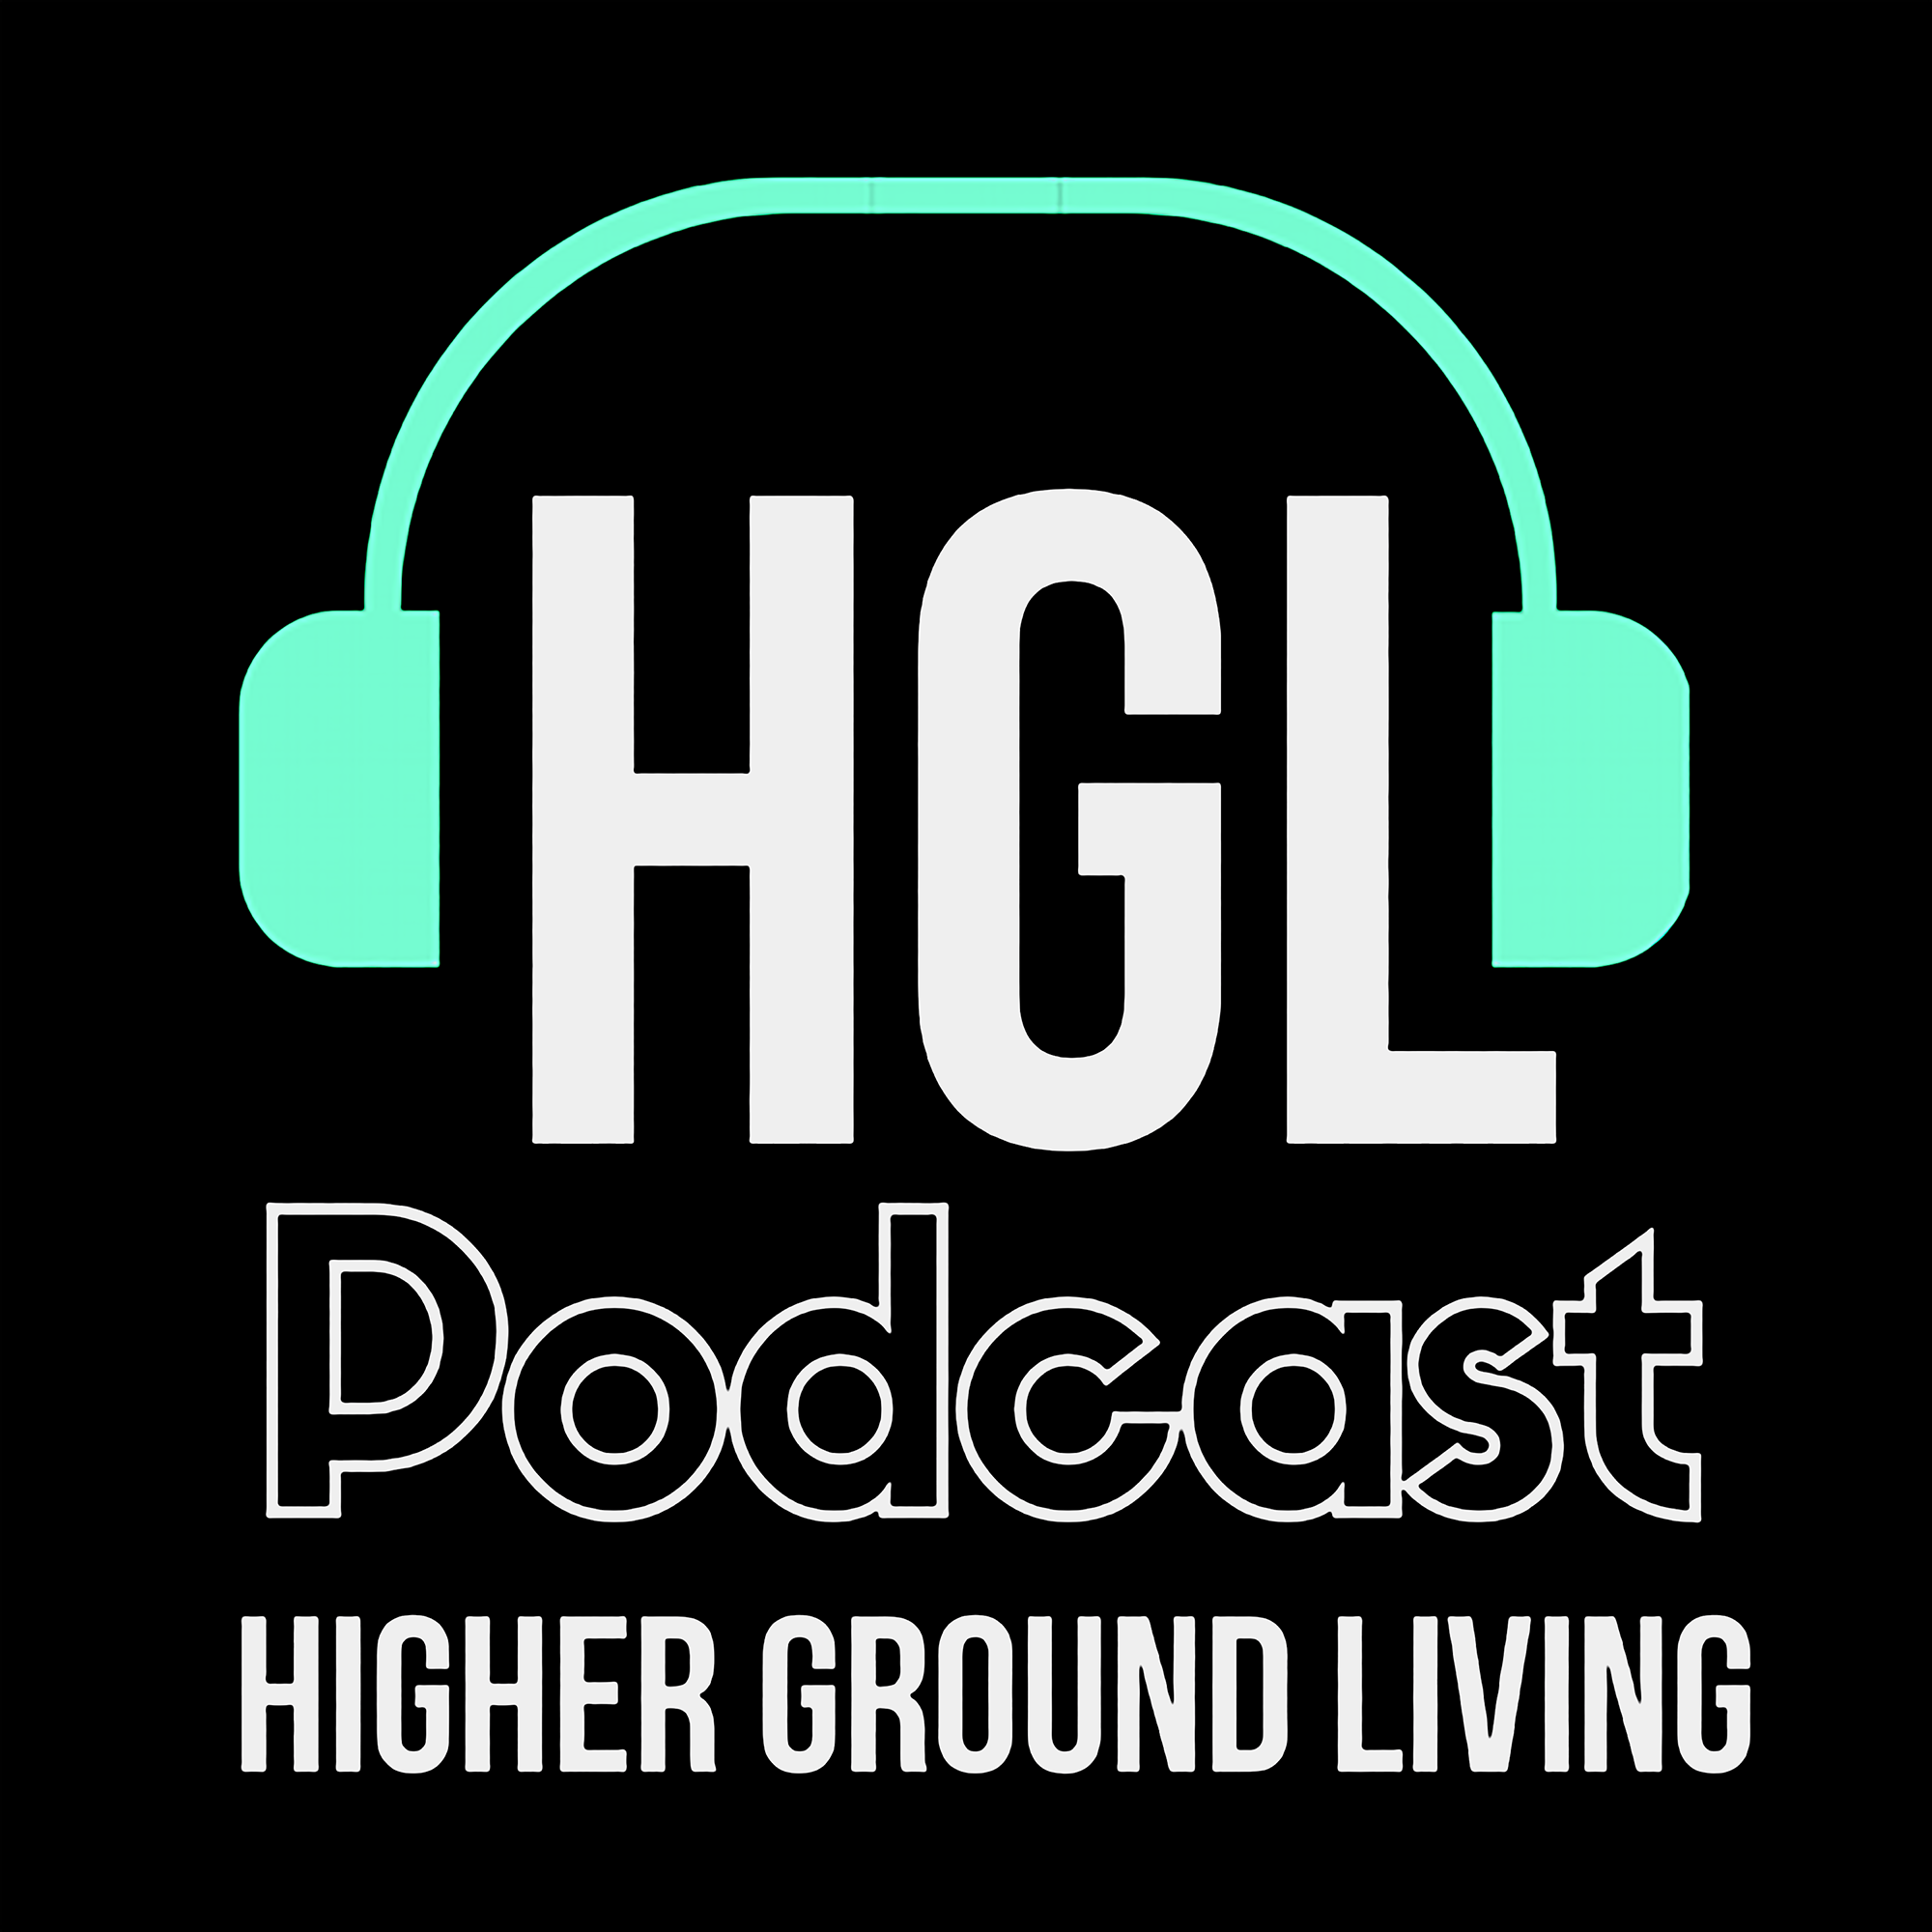 Higher Ground Living Podcast show image